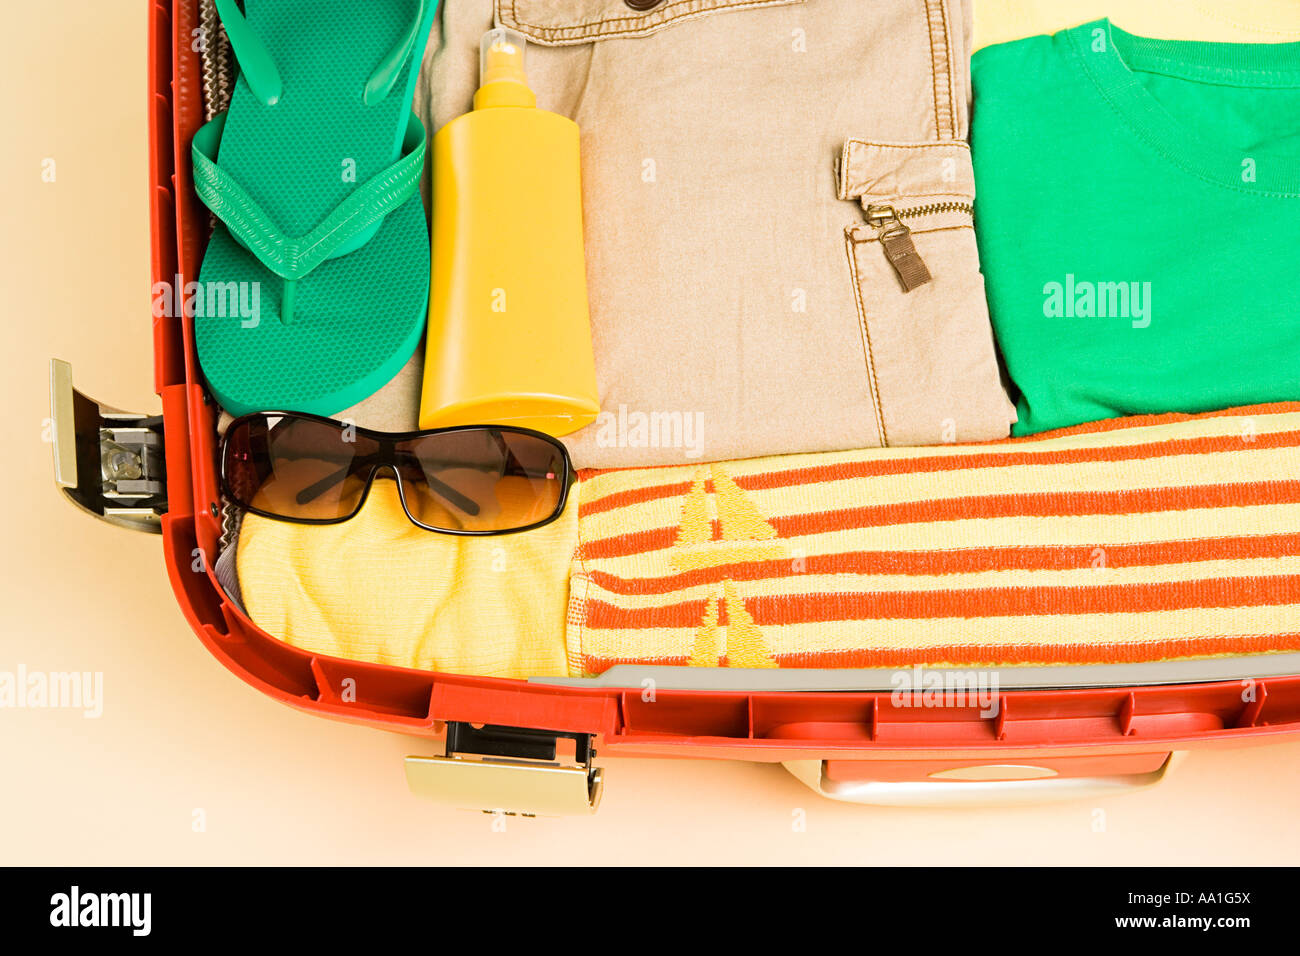 Packed suitcase - Stock Image